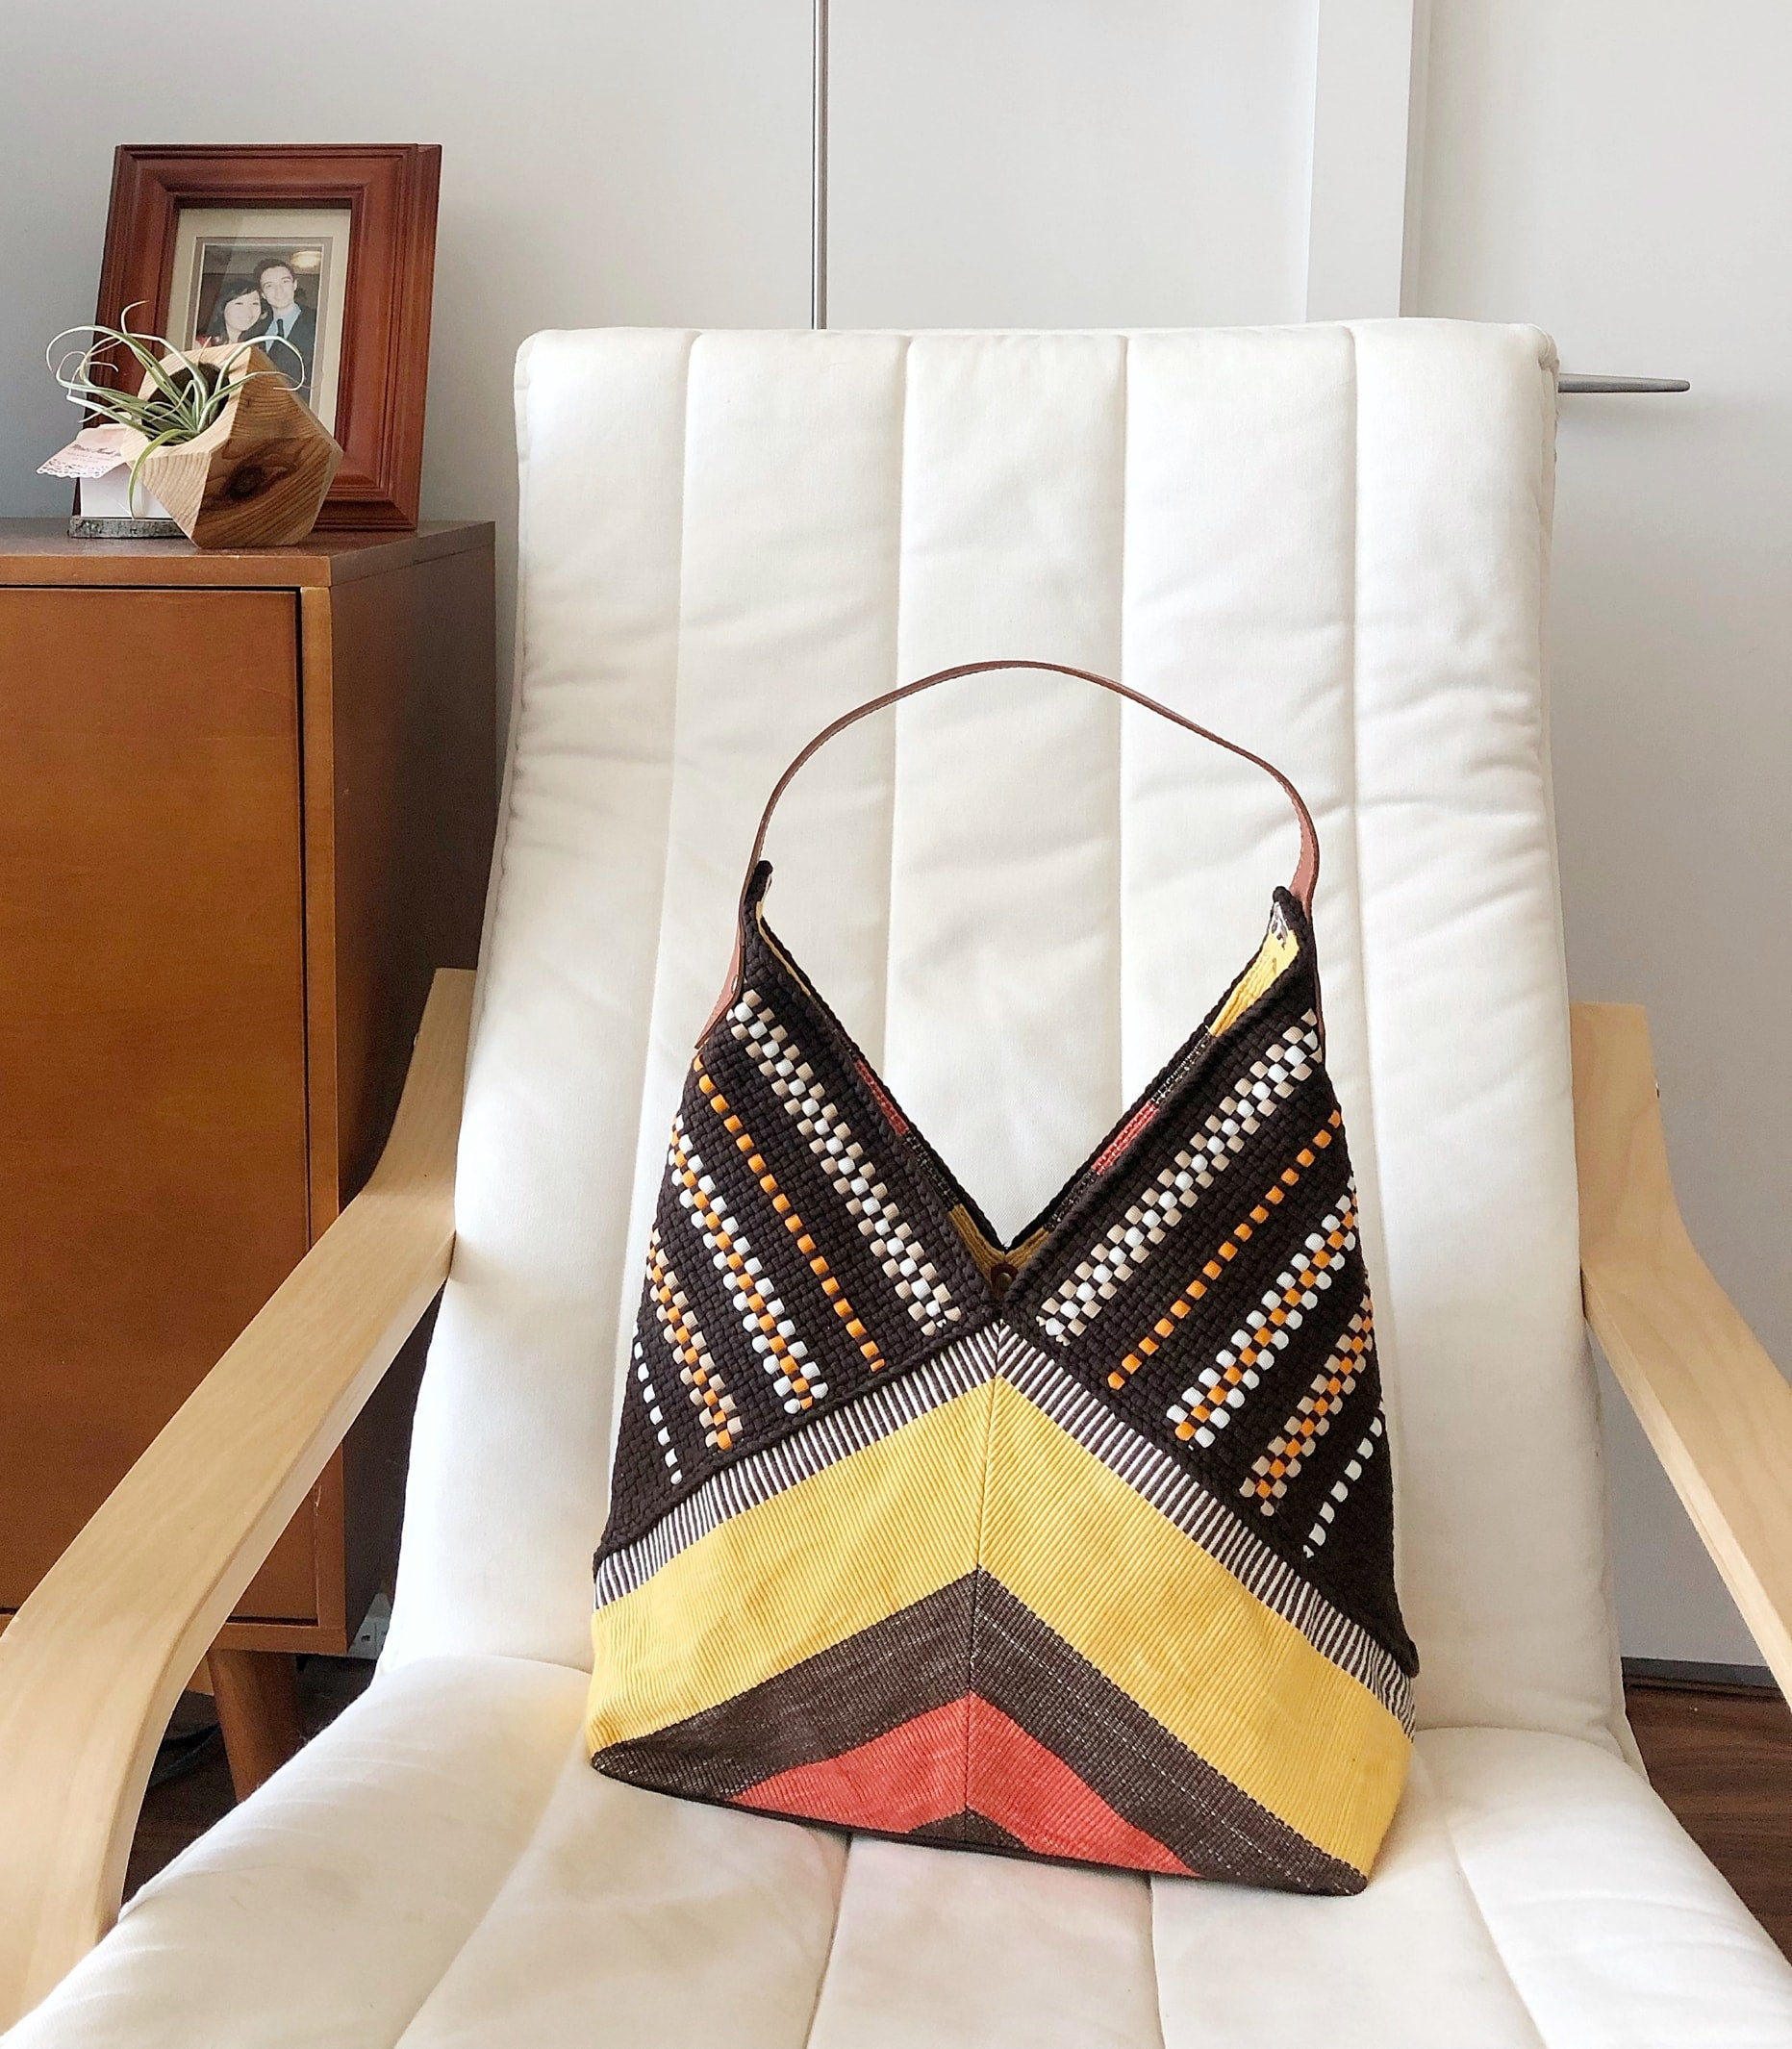 Duyan Tote on a chair - Rags2Riches